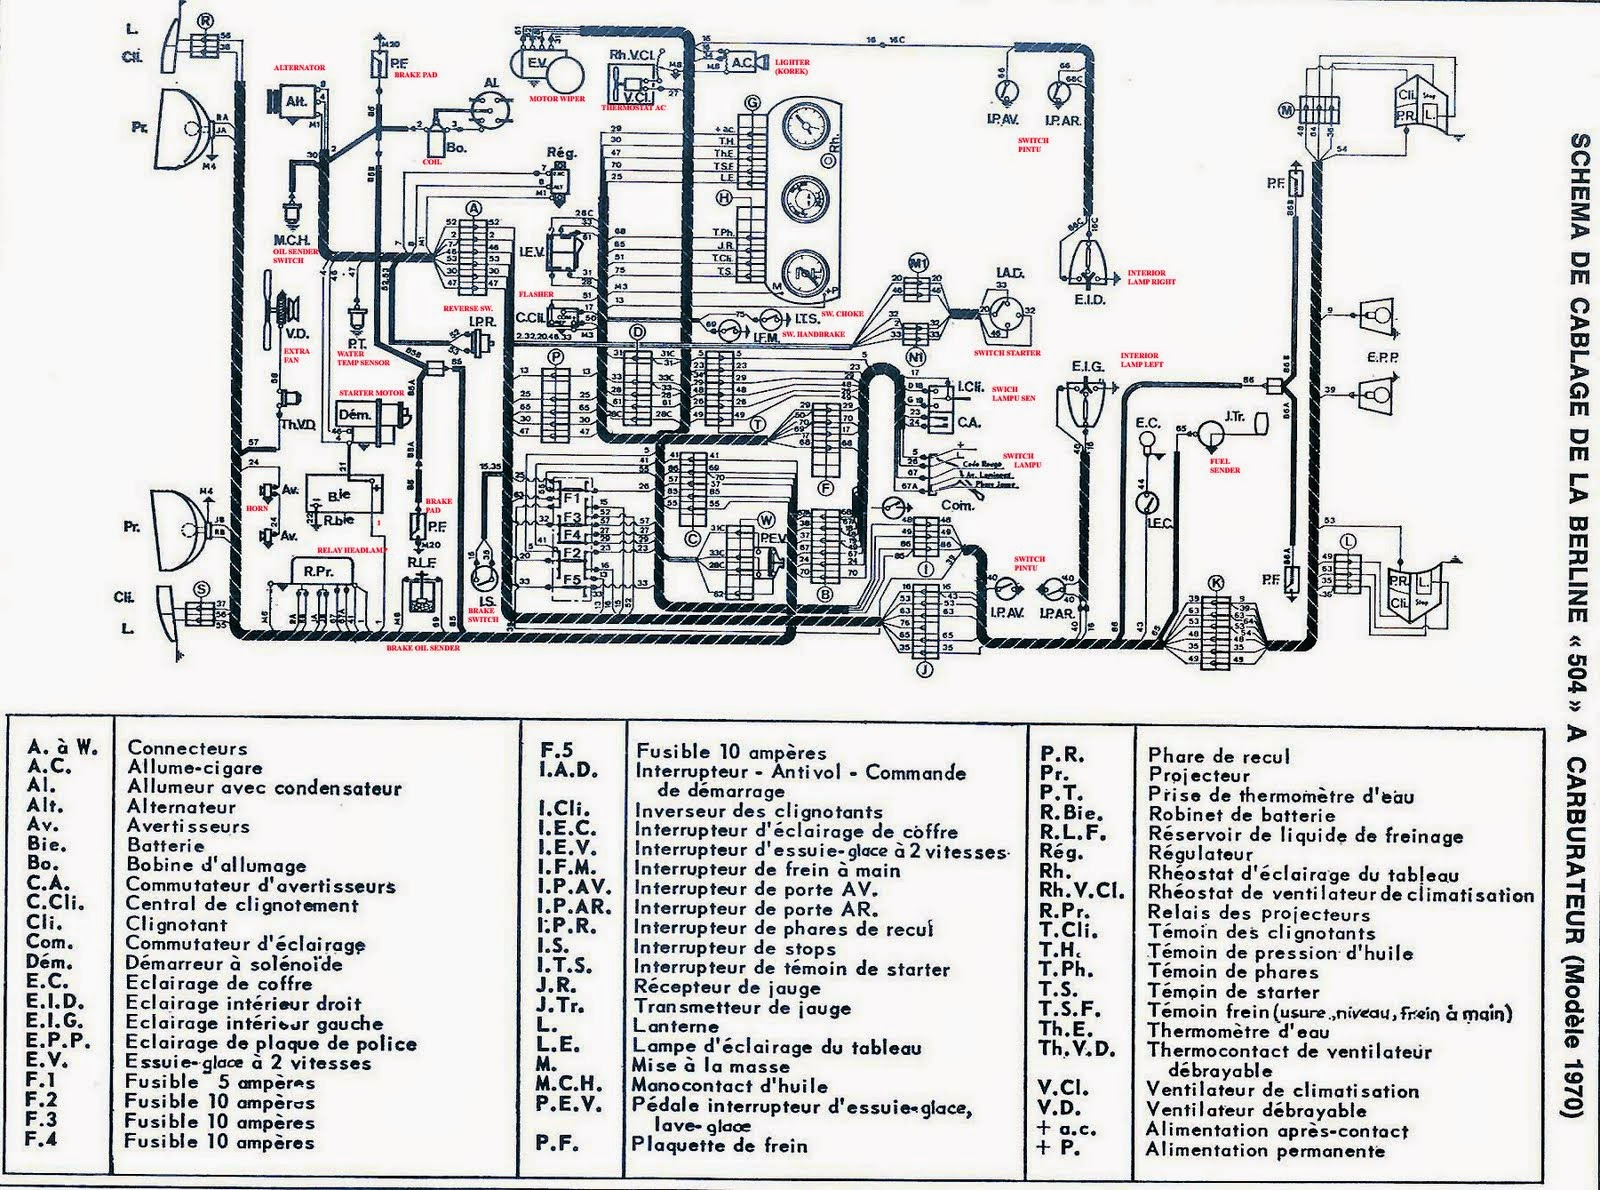 Wiring Diagram Kelistrikan Mobil Solution Of Your Wiring Diagram